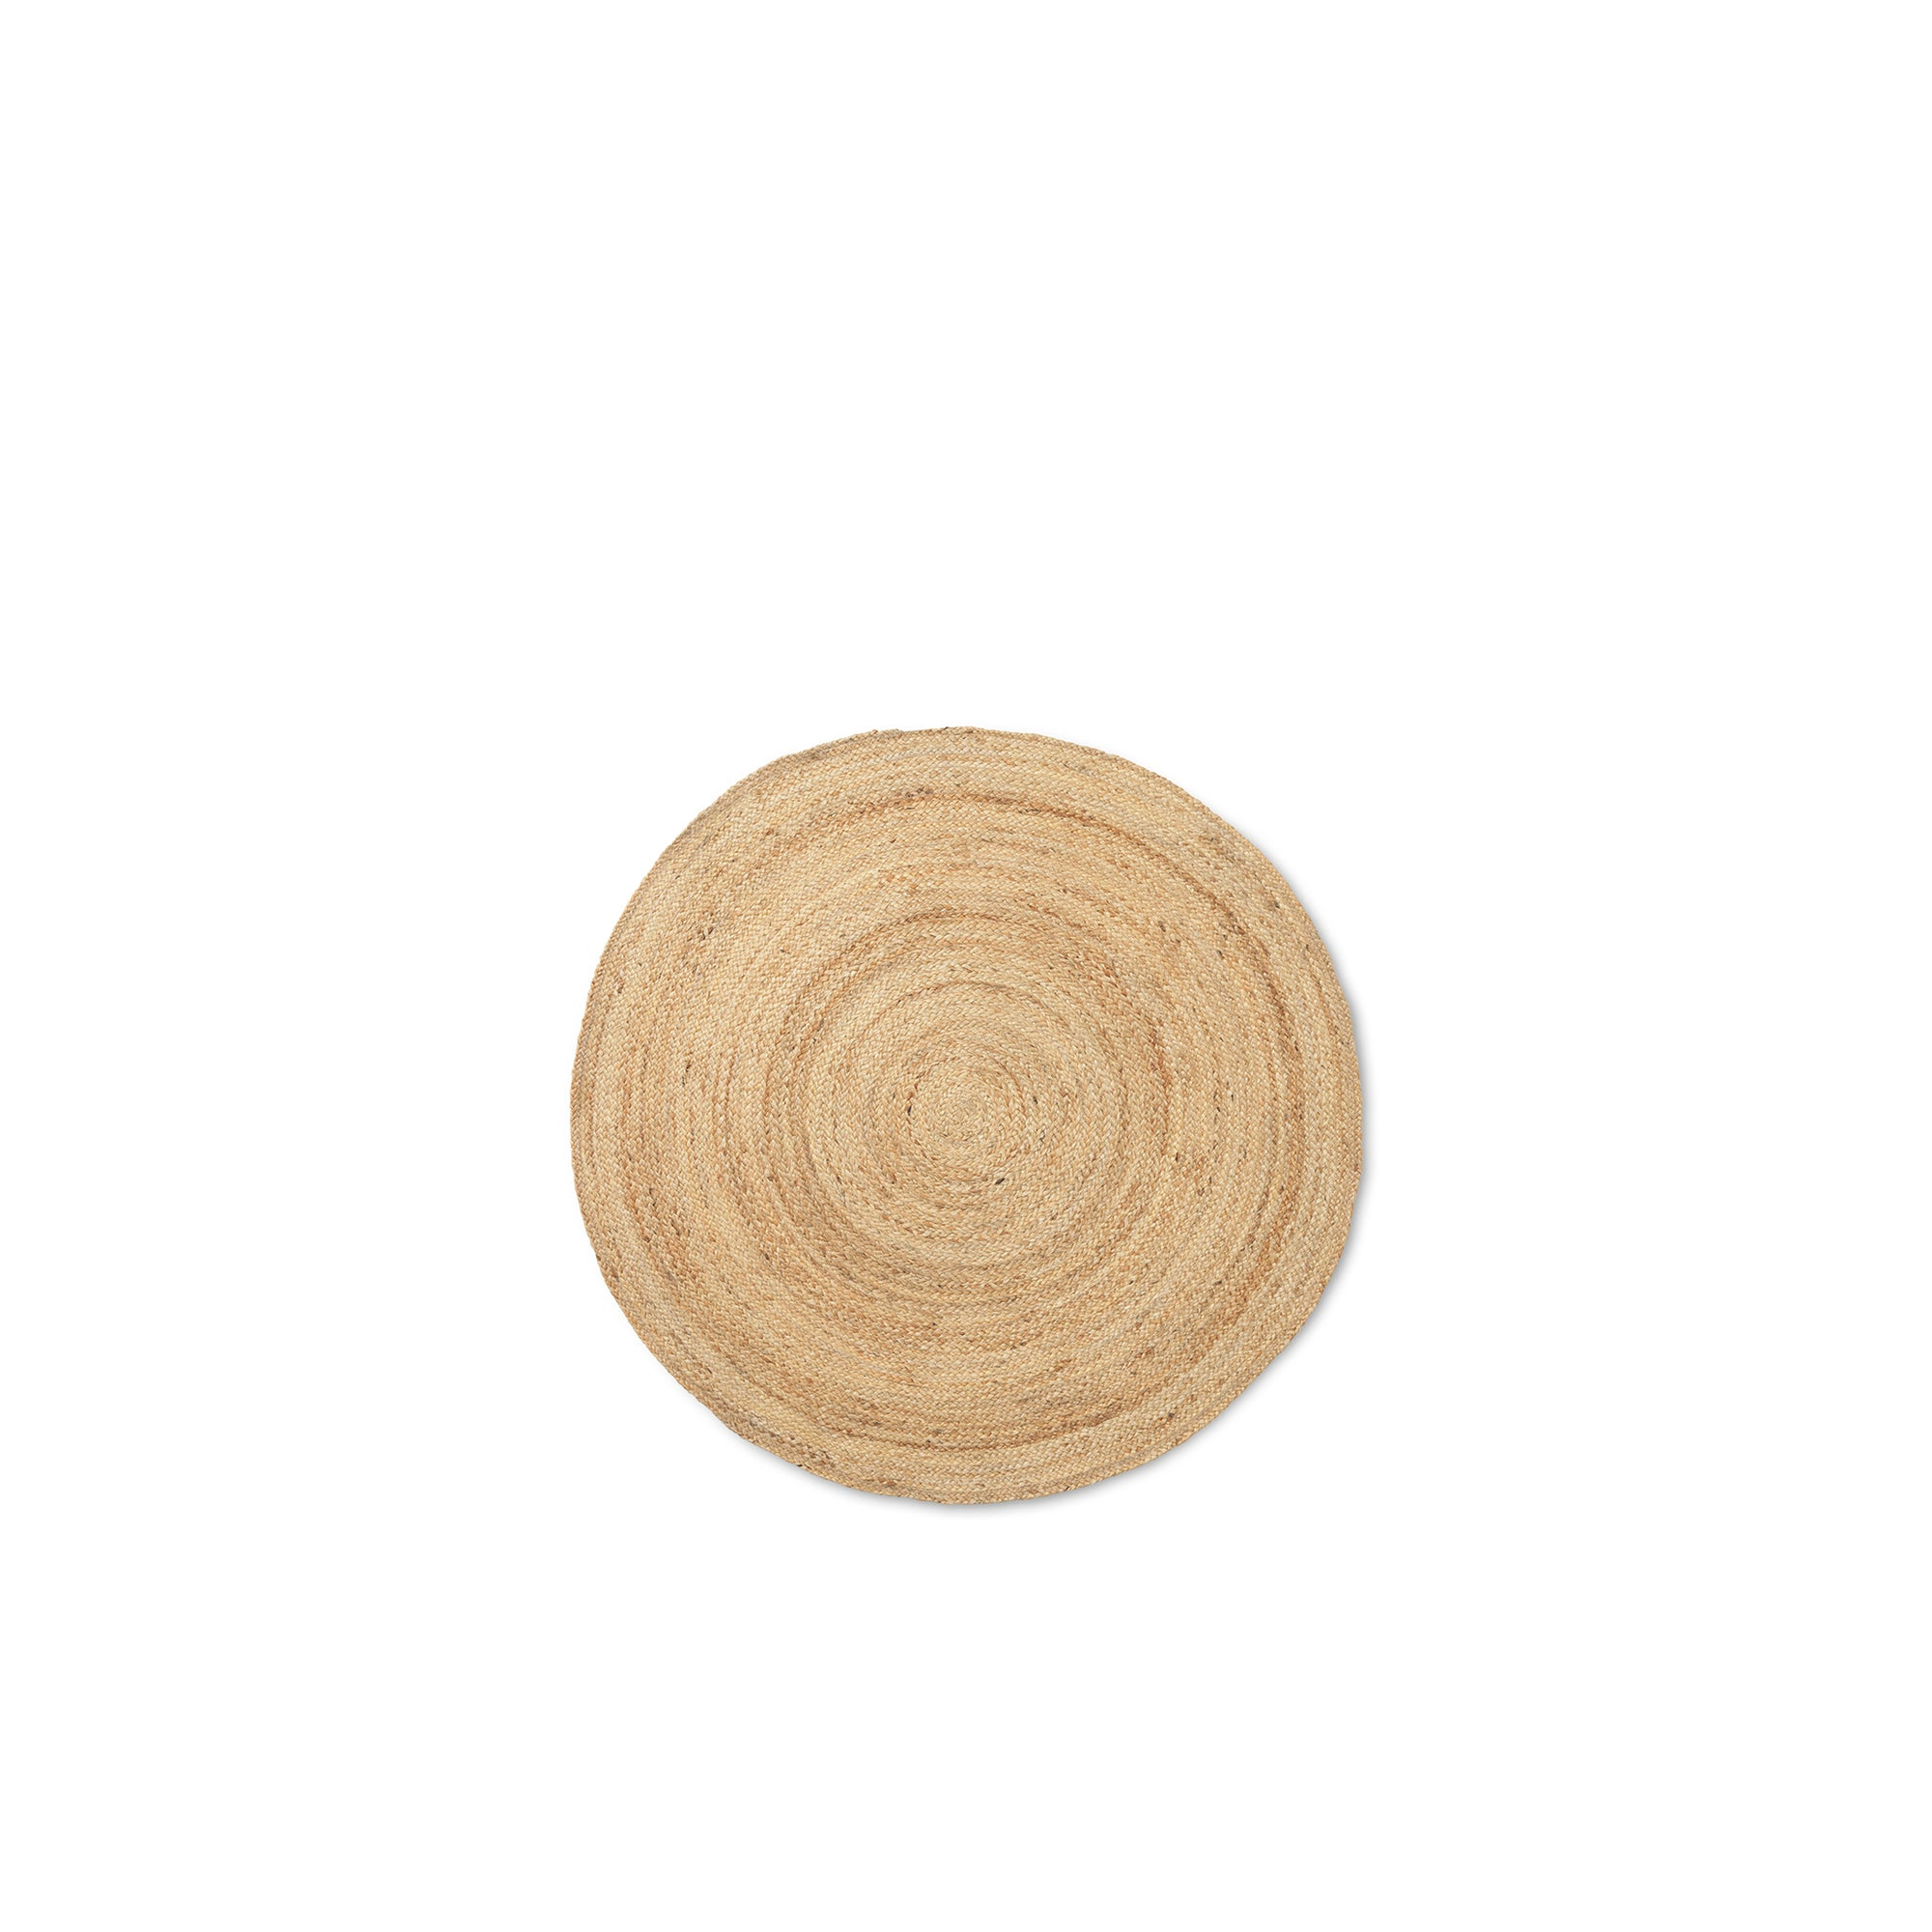 Ferm Living Eternal Round Jute Rug Small: Natural - The Union Project